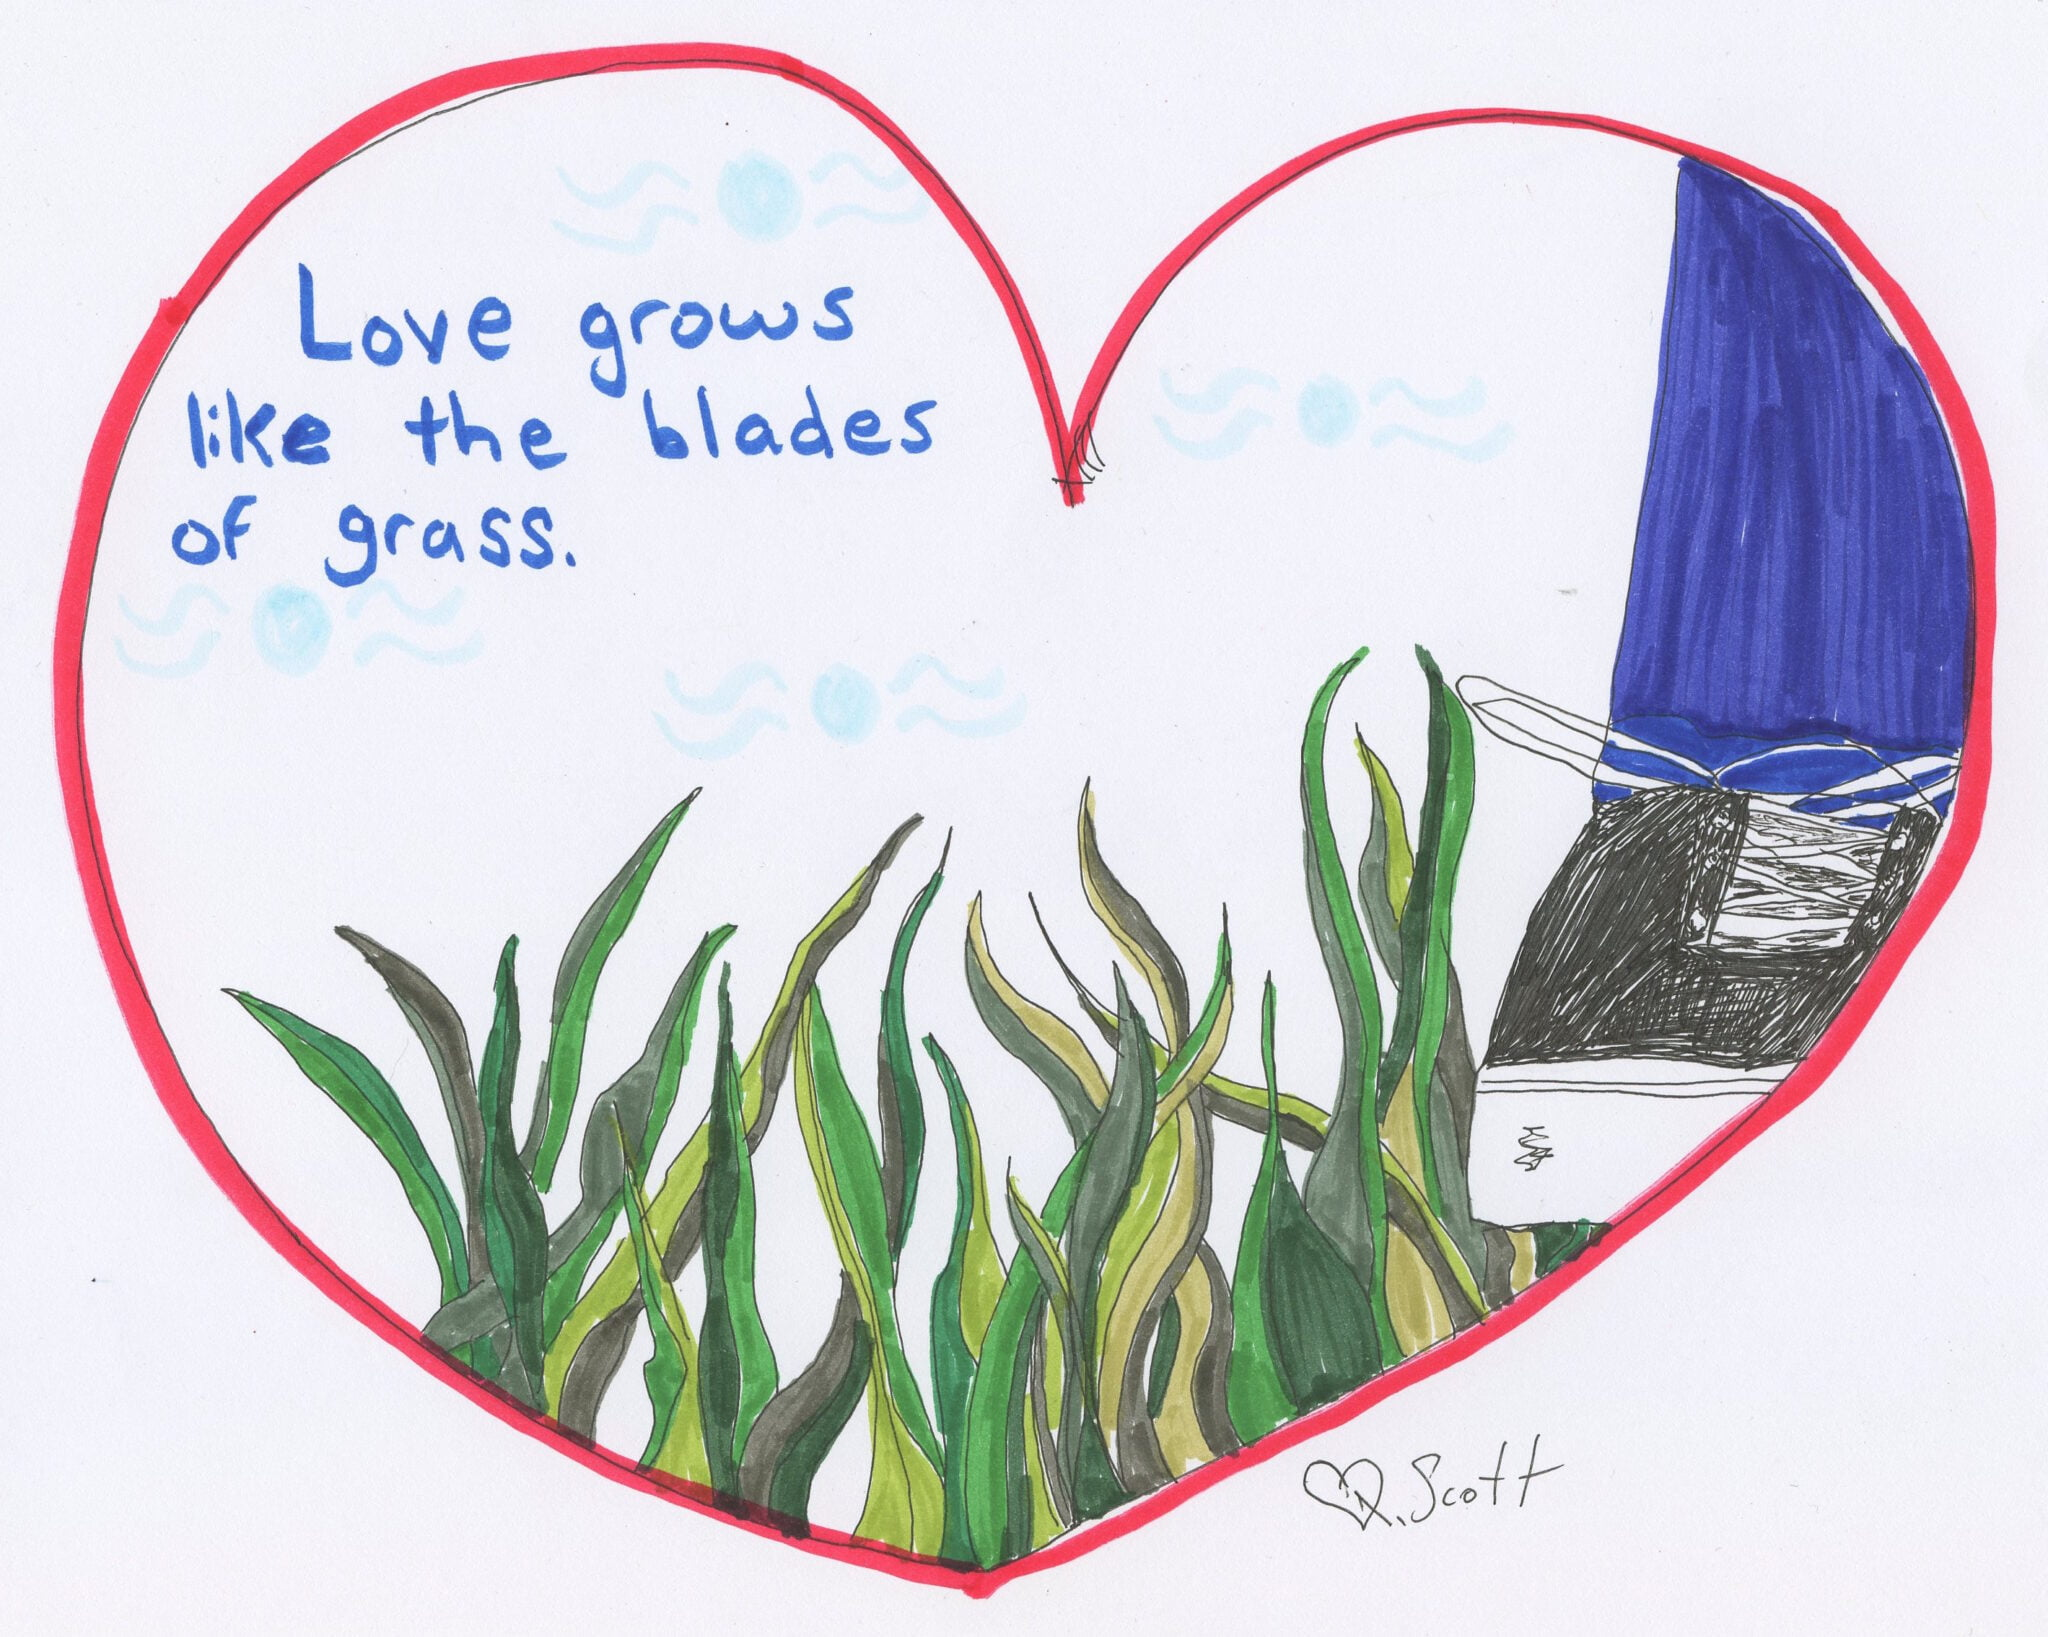 Love grows like the blades of grass.